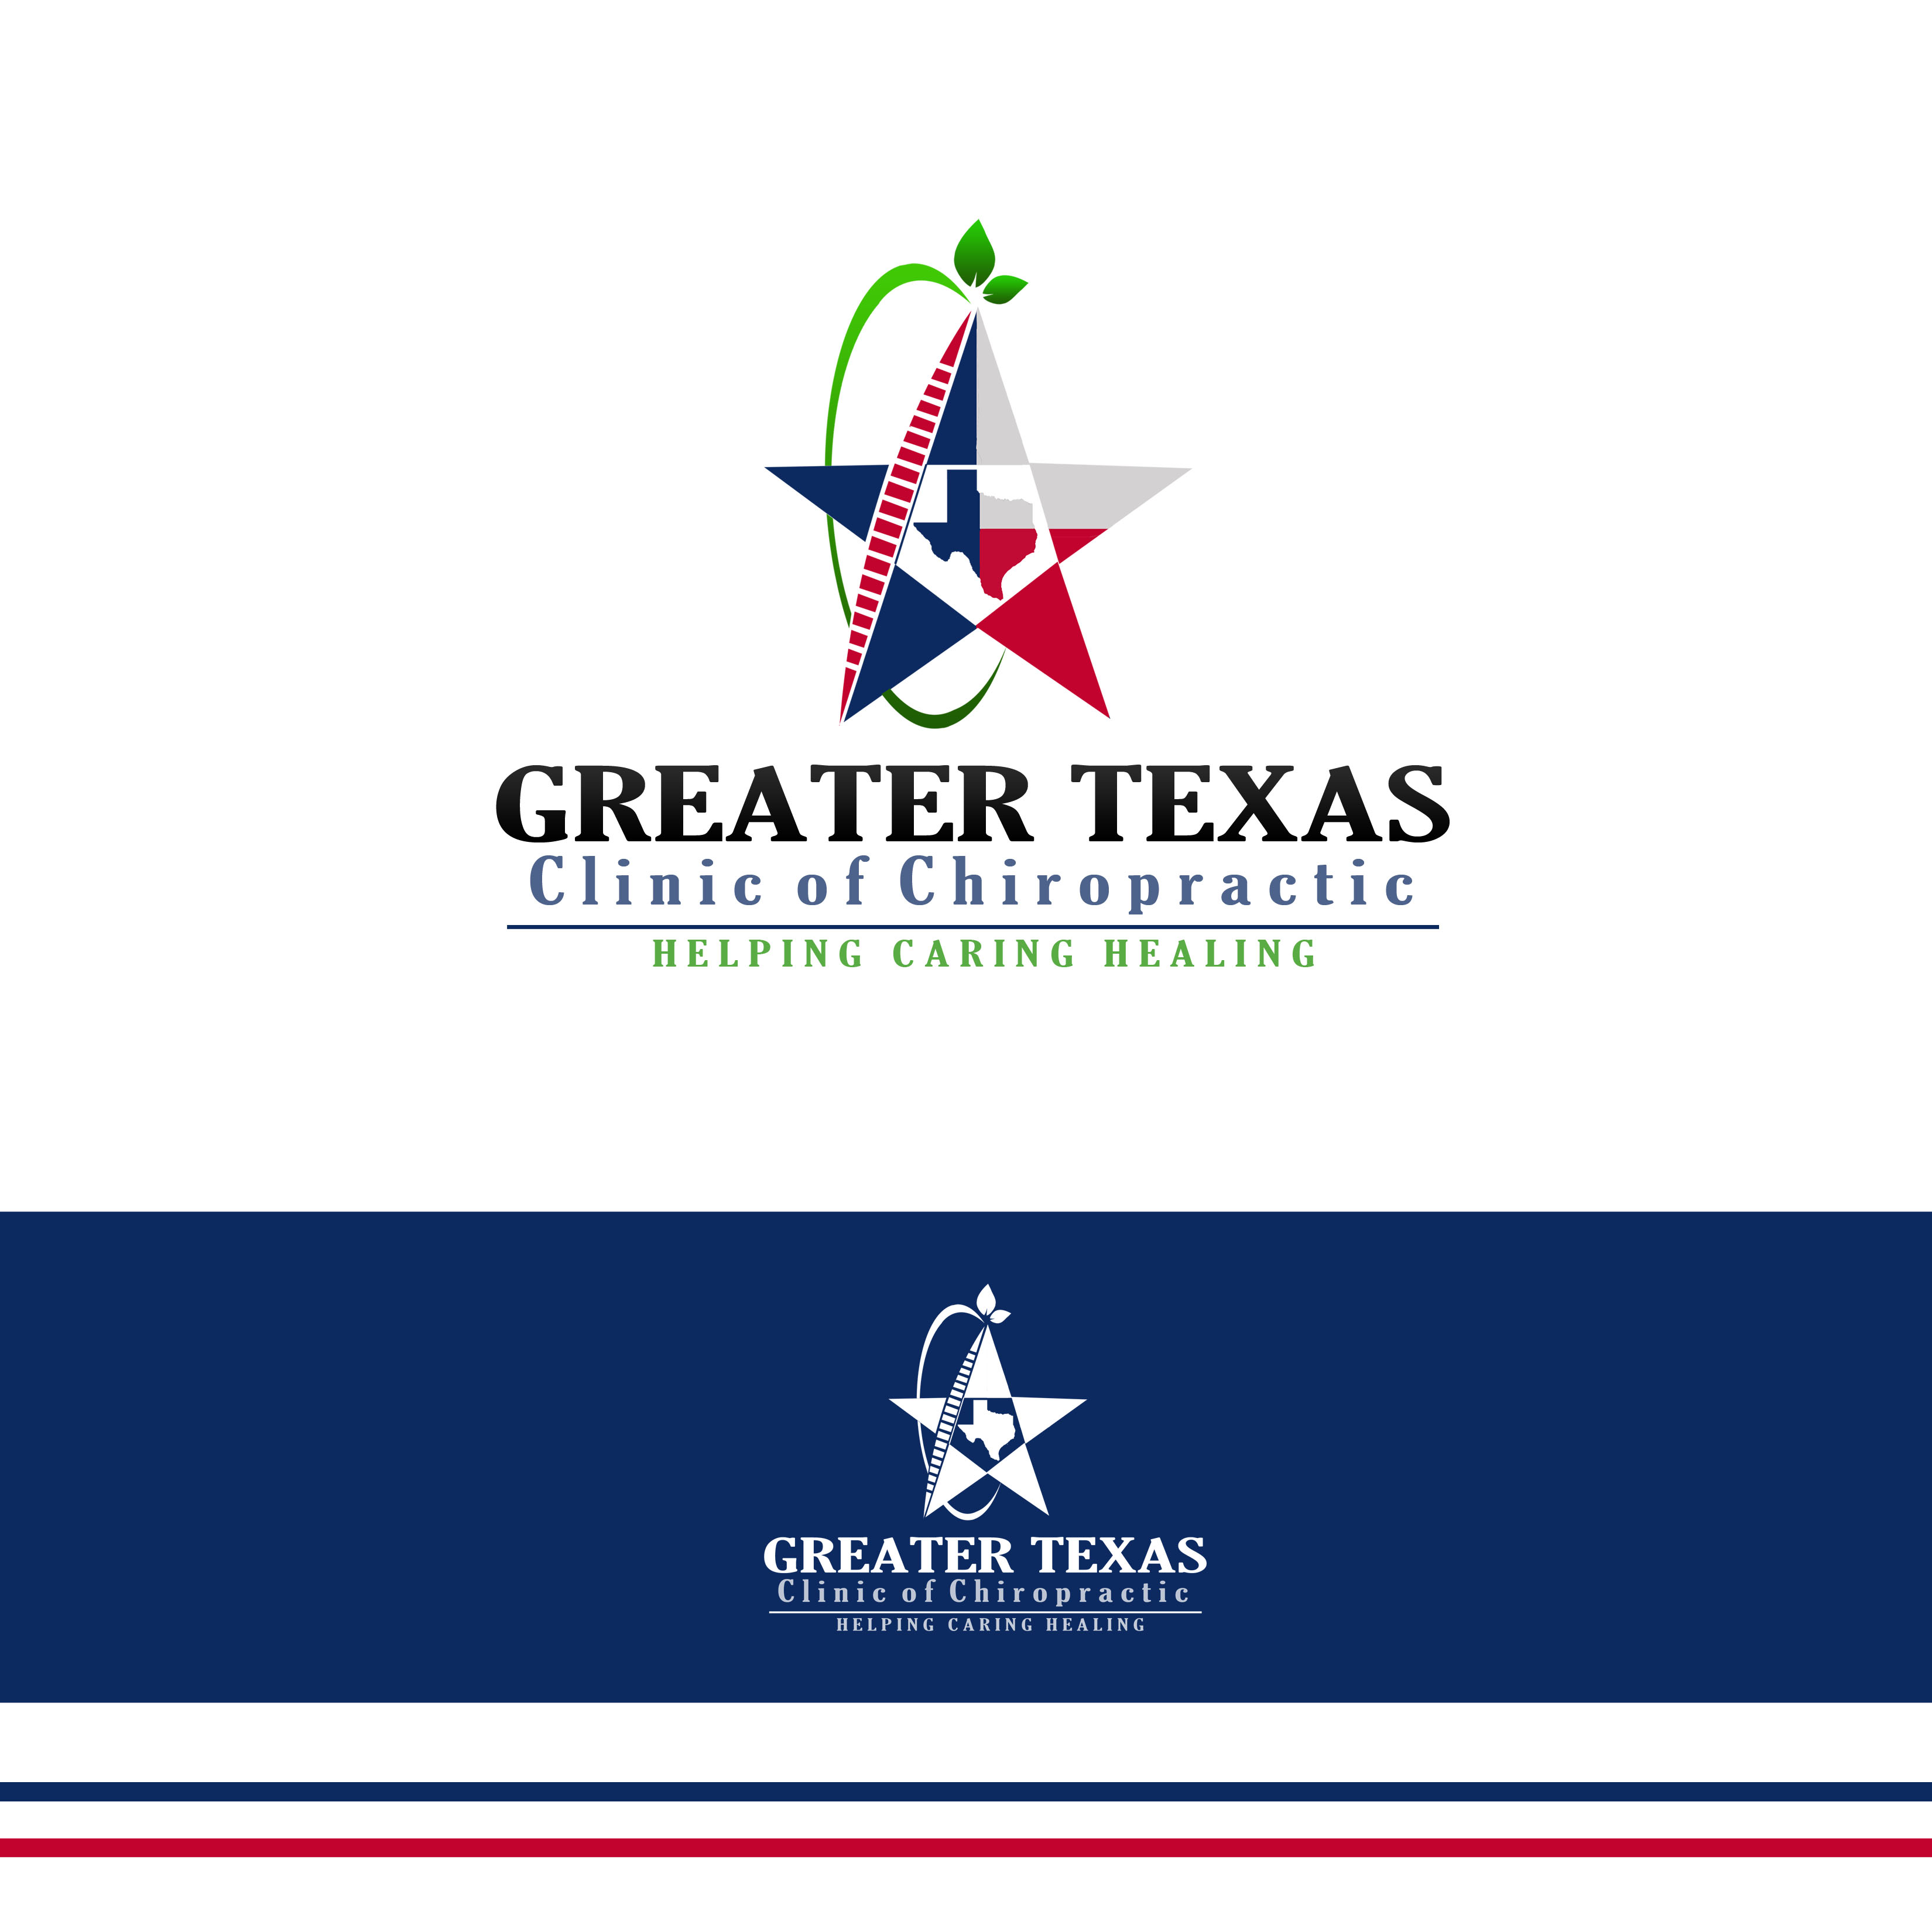 Logo Design by Allan Esclamado - Entry No. 37 in the Logo Design Contest New Logo Design for Greater Texas Clinic of Chiropractic.